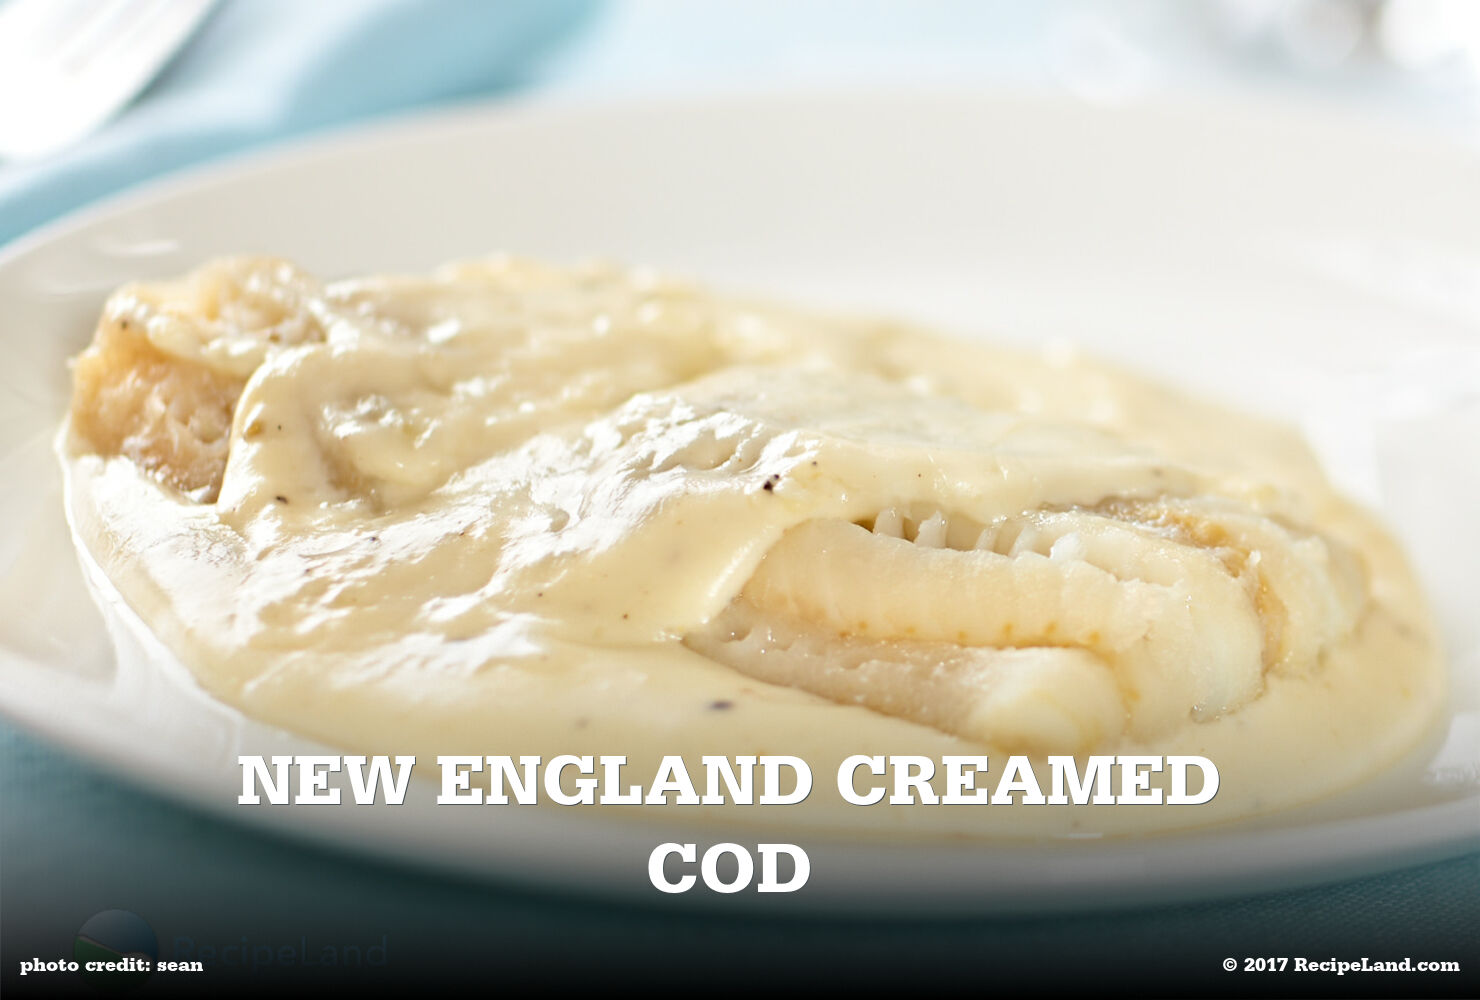 New England Creamed Cod